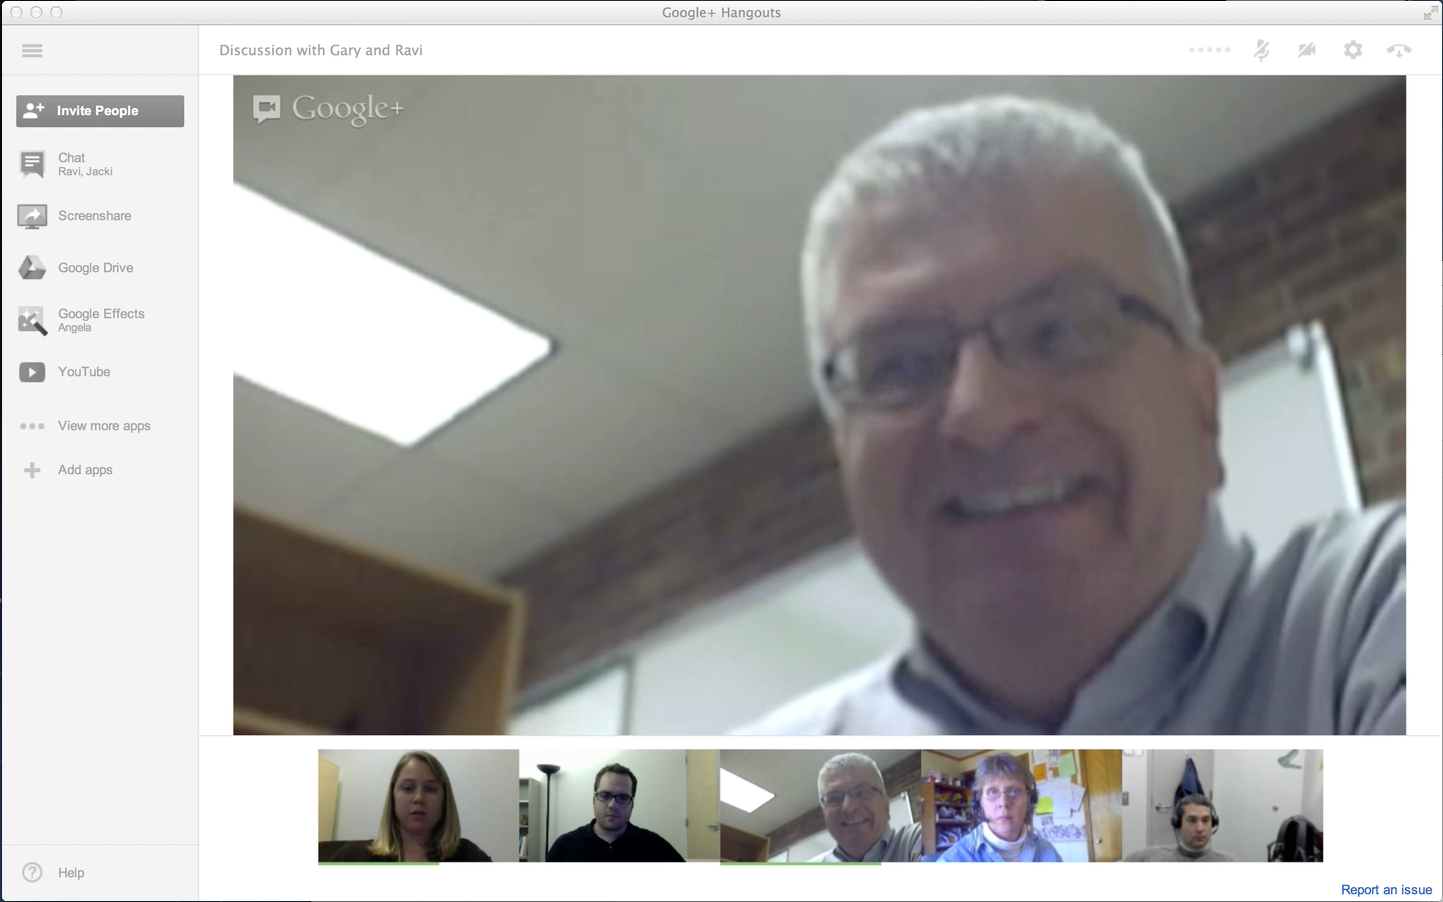 The interface of Google+ Hangout with five individuals participating. Instructor Gary Heberling speaking to the group about his experiences with Google+ Hangout. The person speaking will become the larger center image.